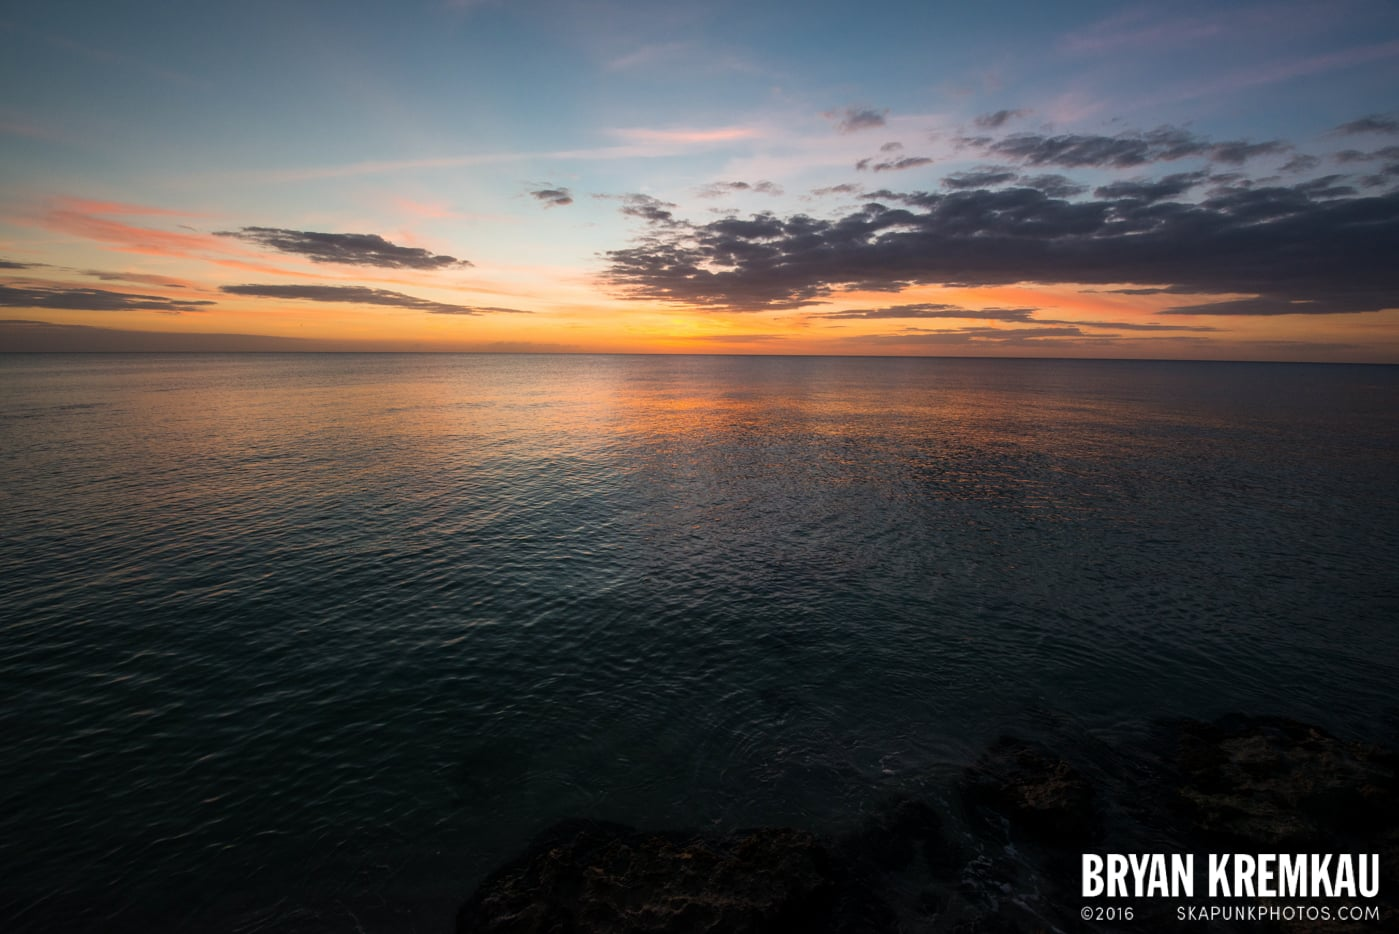 Sunsets, Astrophotography & Birds @ Venice, Florida - 10.25.14 - 11.5.14 (62)